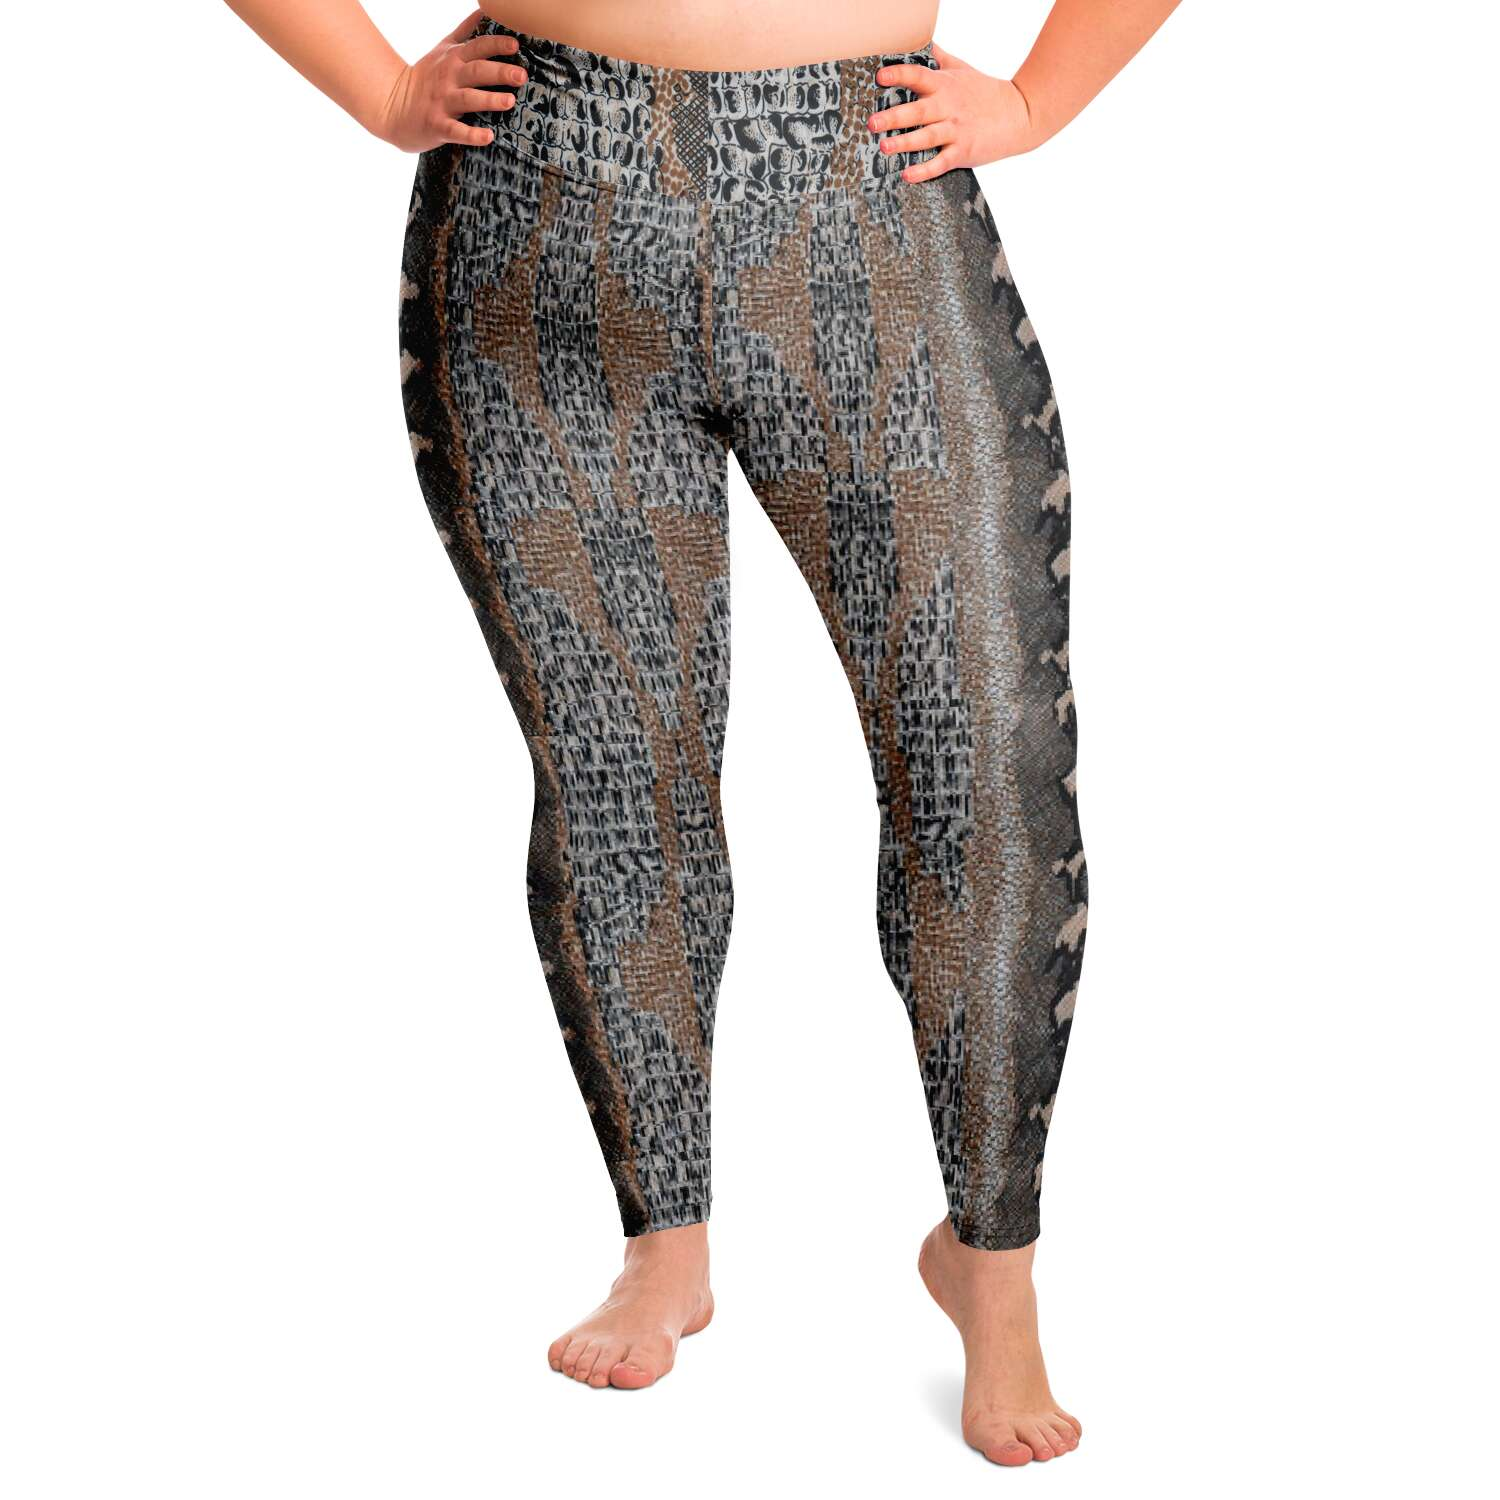 Snake Skin Yoga Leggings Plus Size